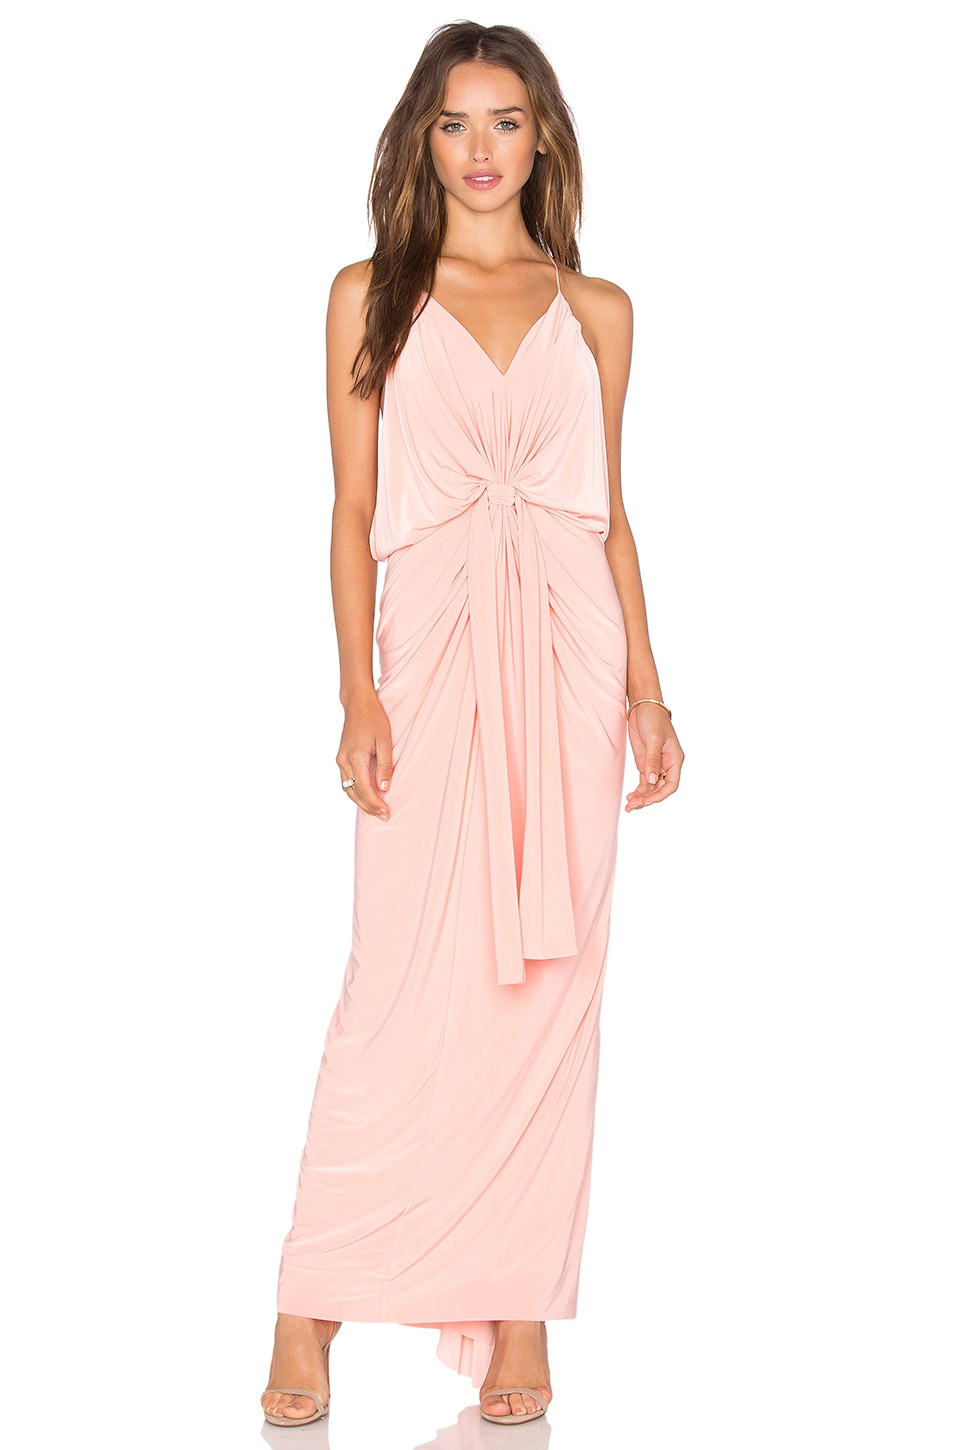 MISA Los Angeles Domino Tie Front Maxi Dress in Blush